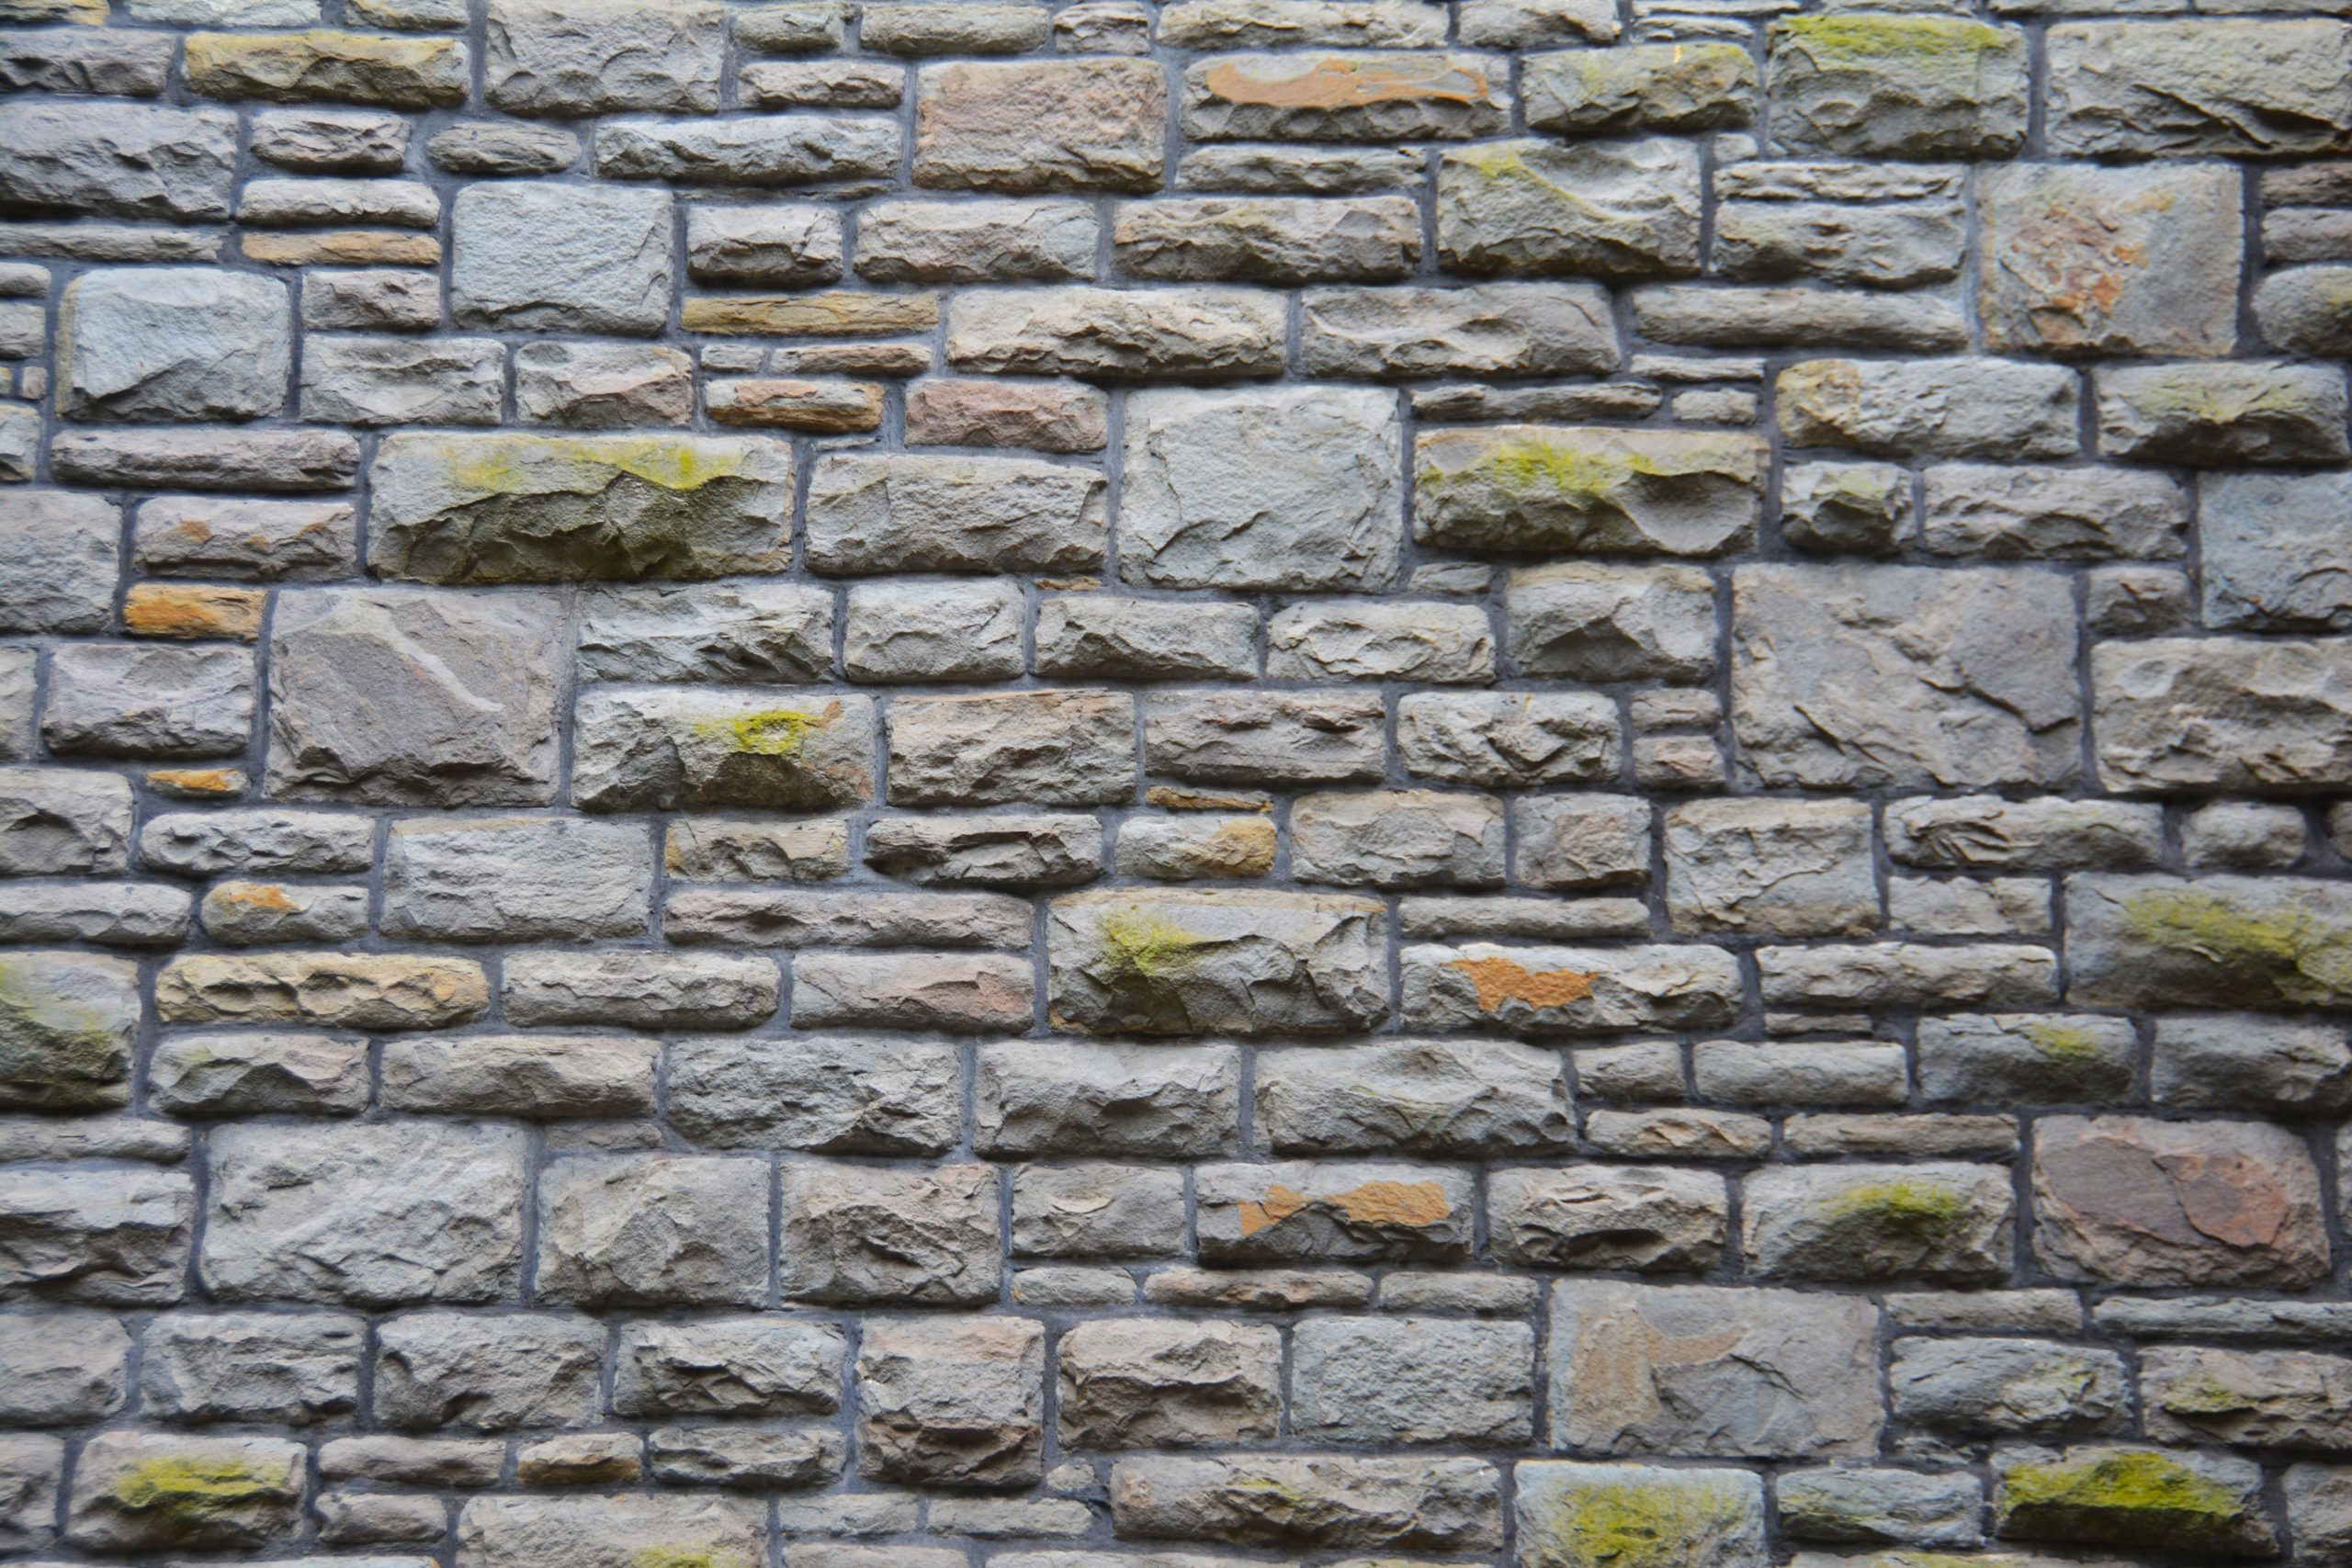 The advantages of using natural stone   veneer for cladding